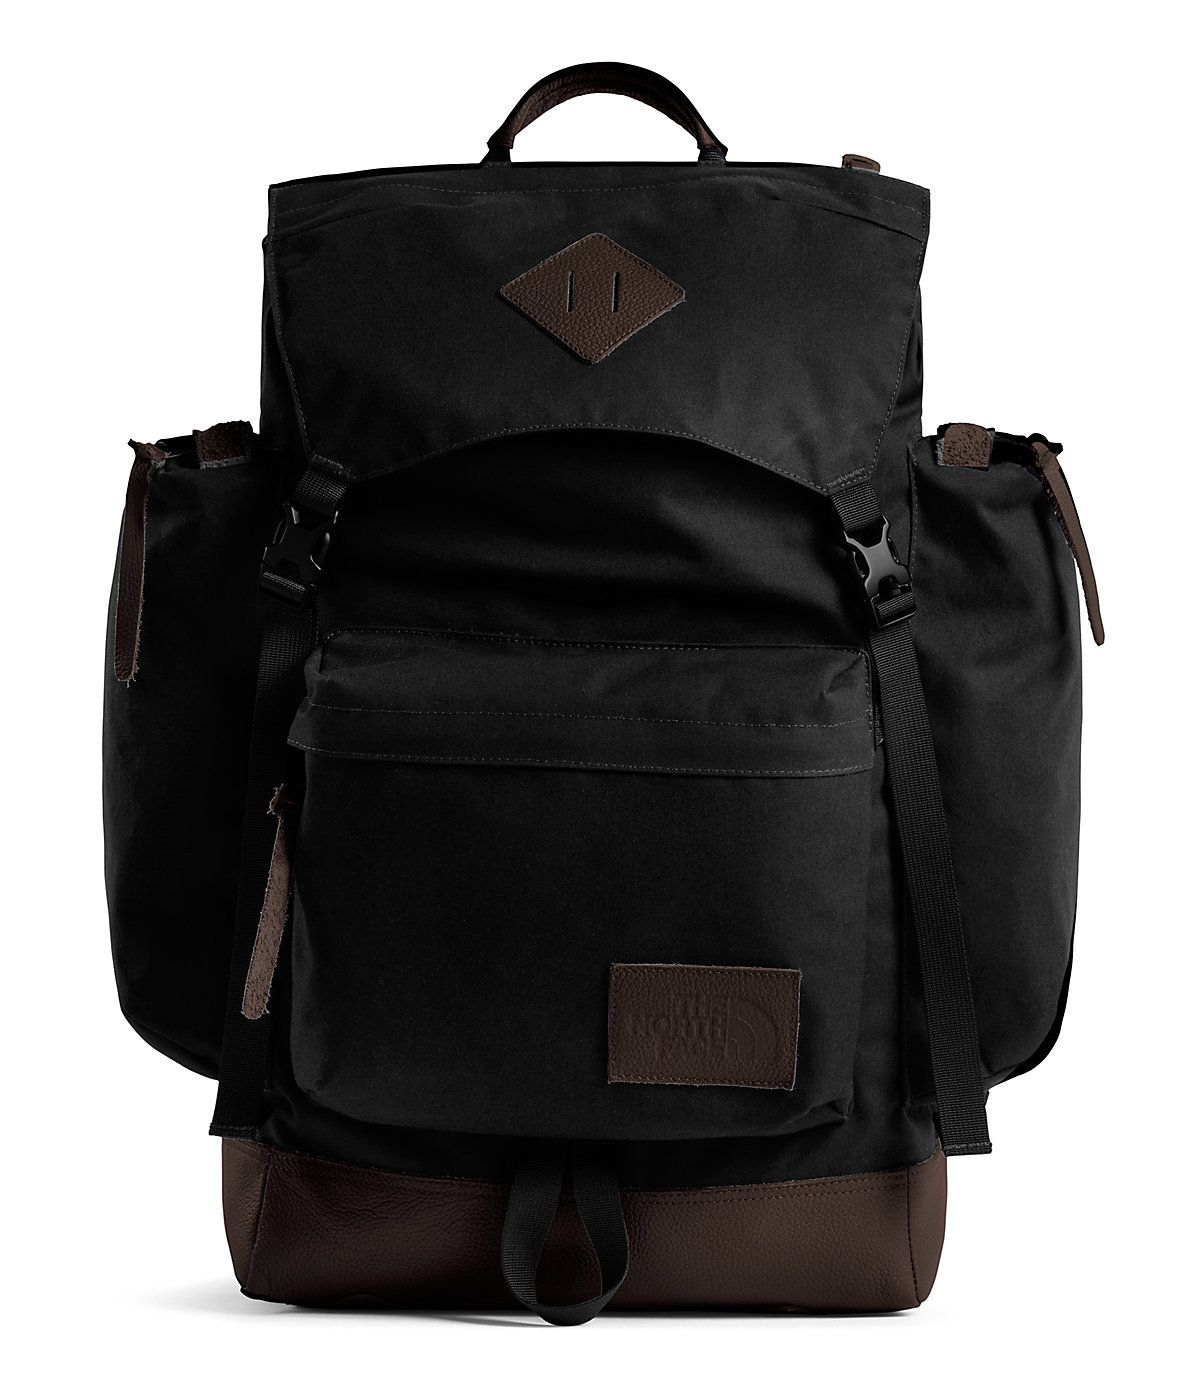 97c65c5b3232 Premium rucksack backpack in 2019 | Products | Rucksack backpack ...